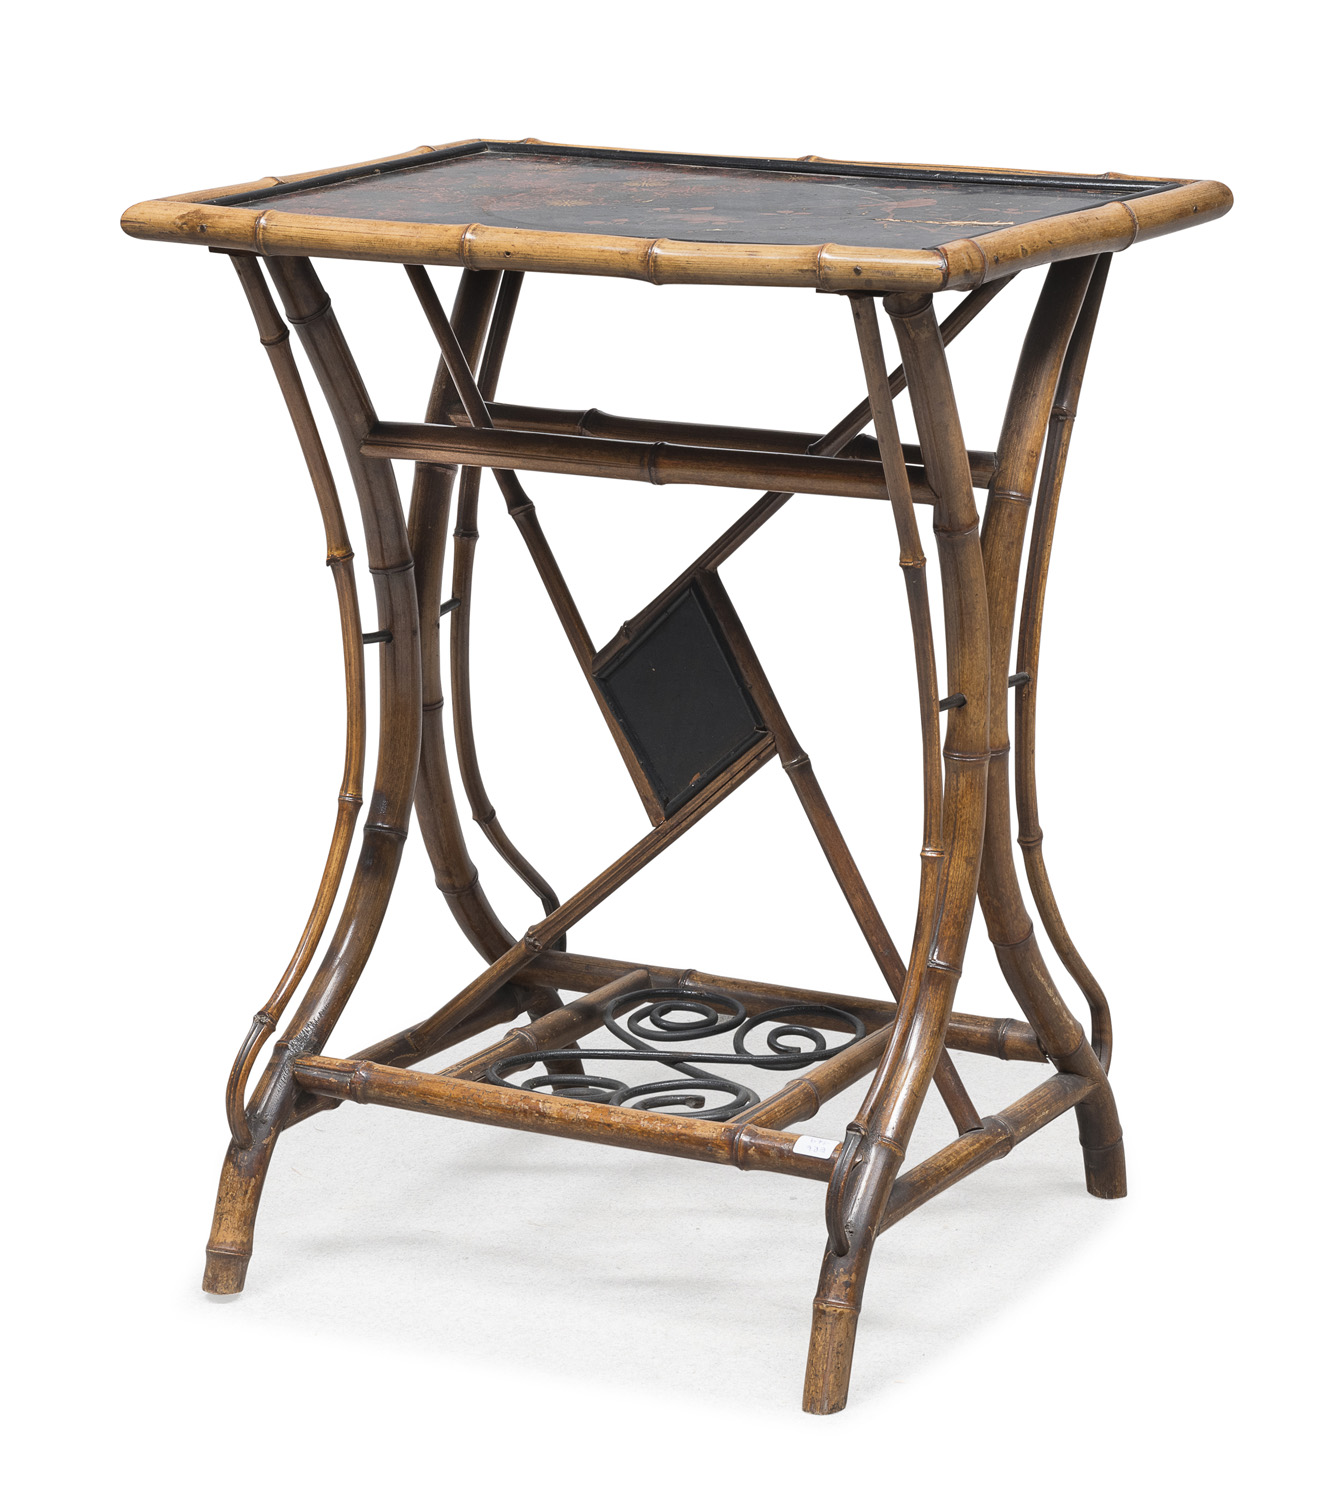 BAMBOO TABLE FRANCE 1920s